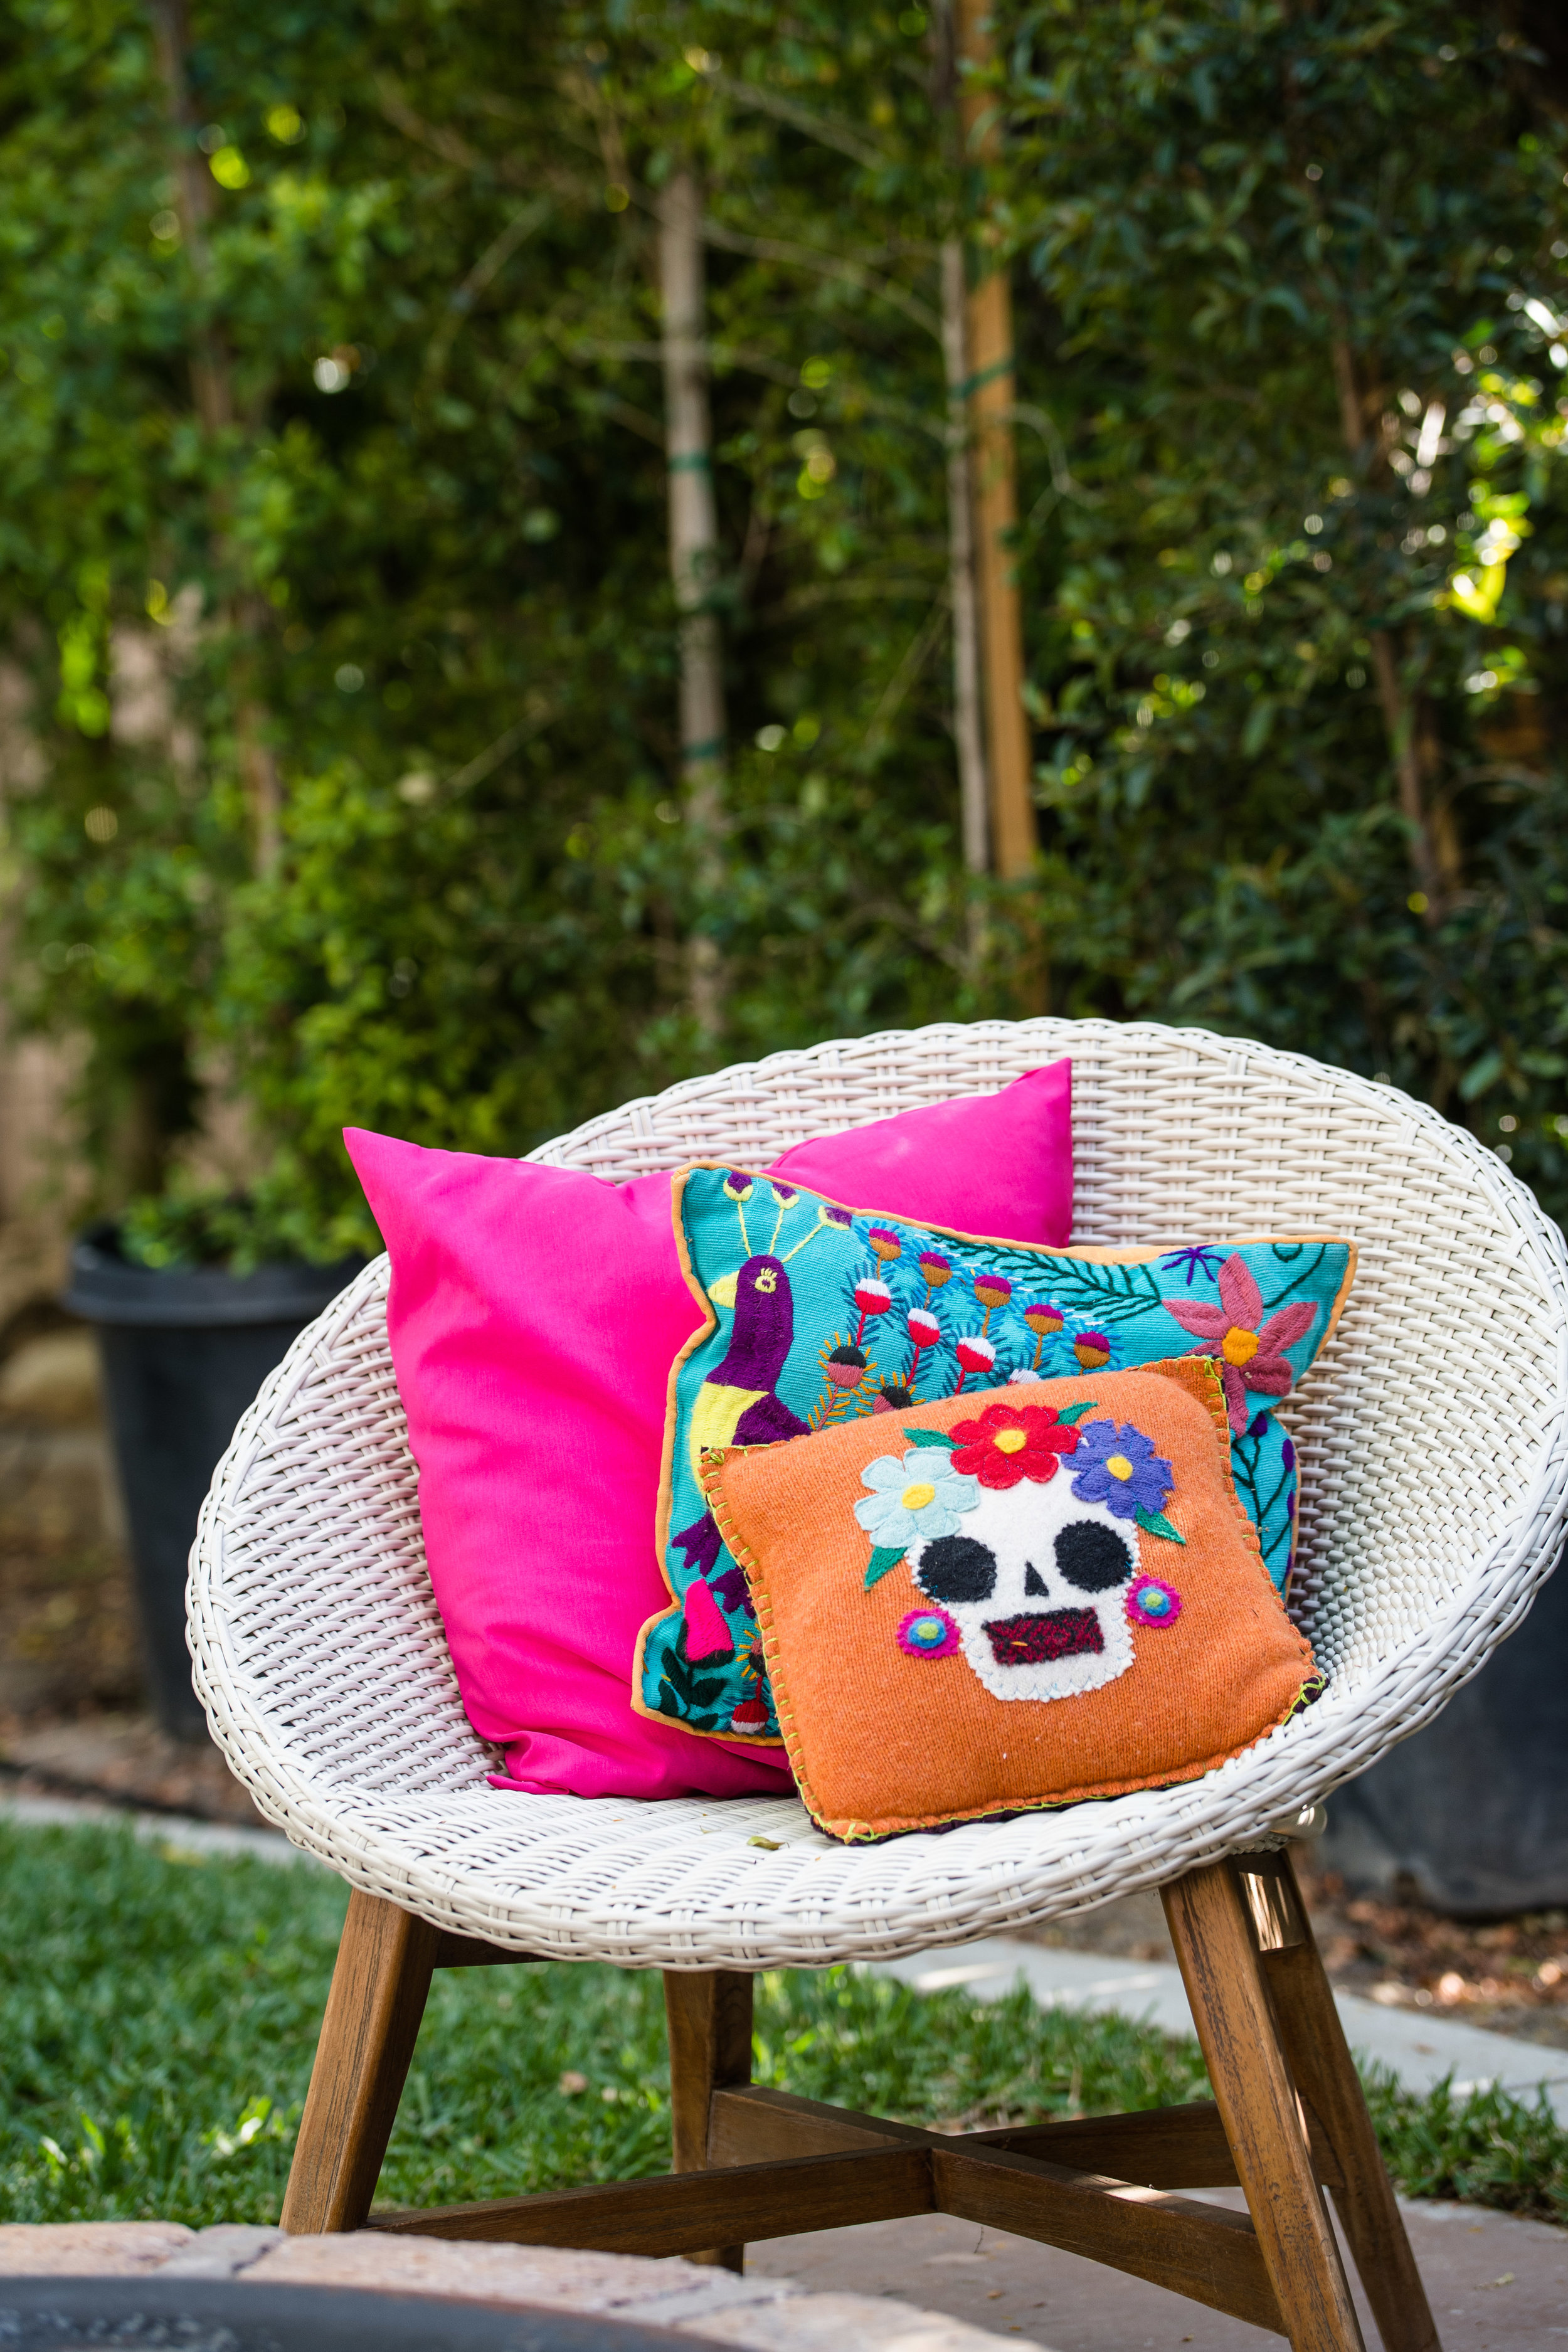 Vibrant Fiesta Backyard Wedding Reception mexican inspired pillows with hot pink accents.jpg